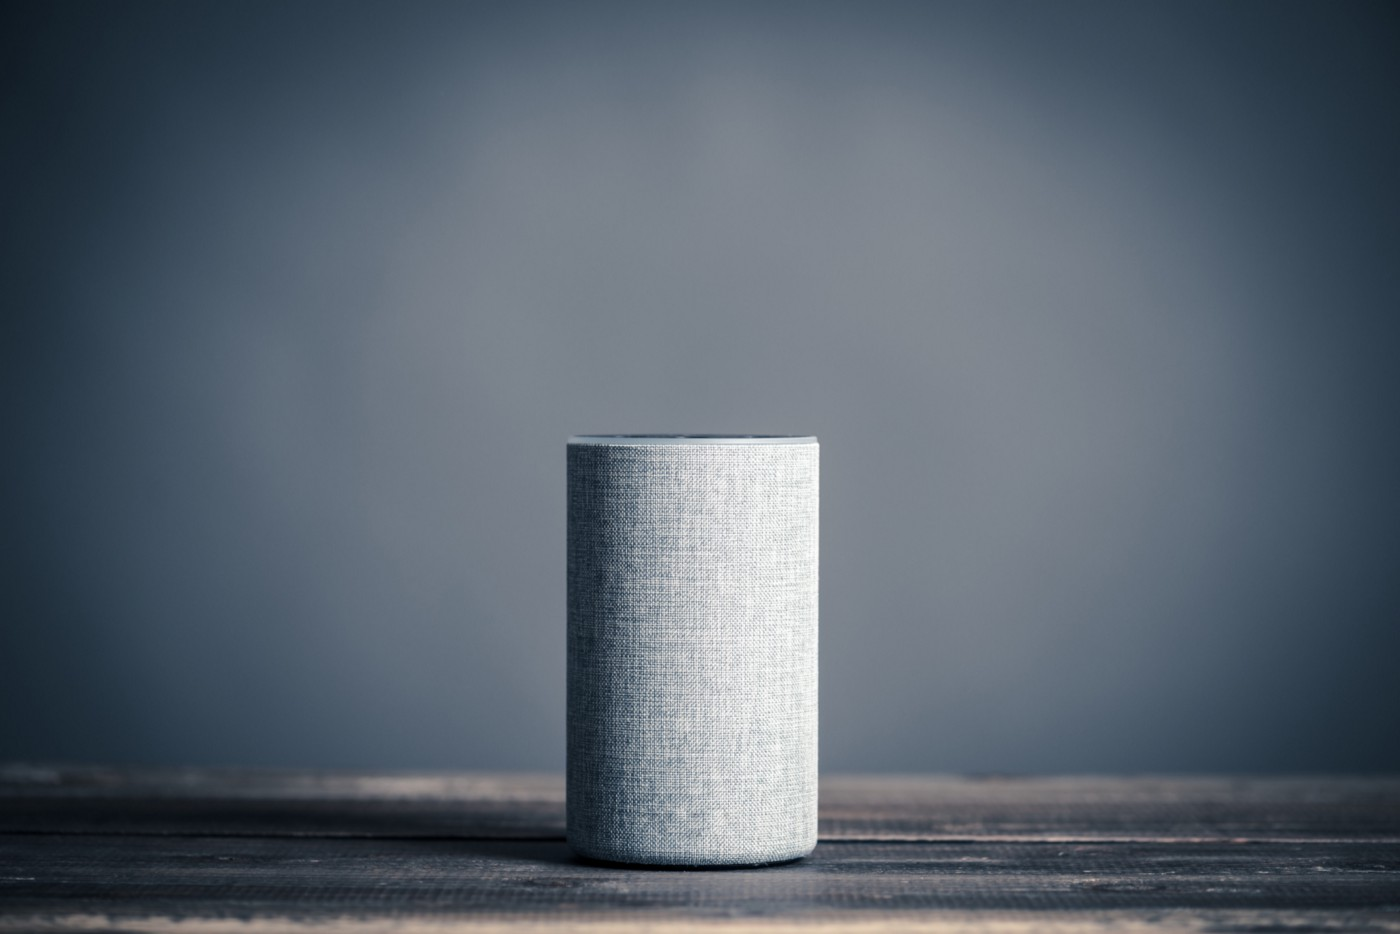 Amazon Echo Privacy Iocation tracking lawsuits recording